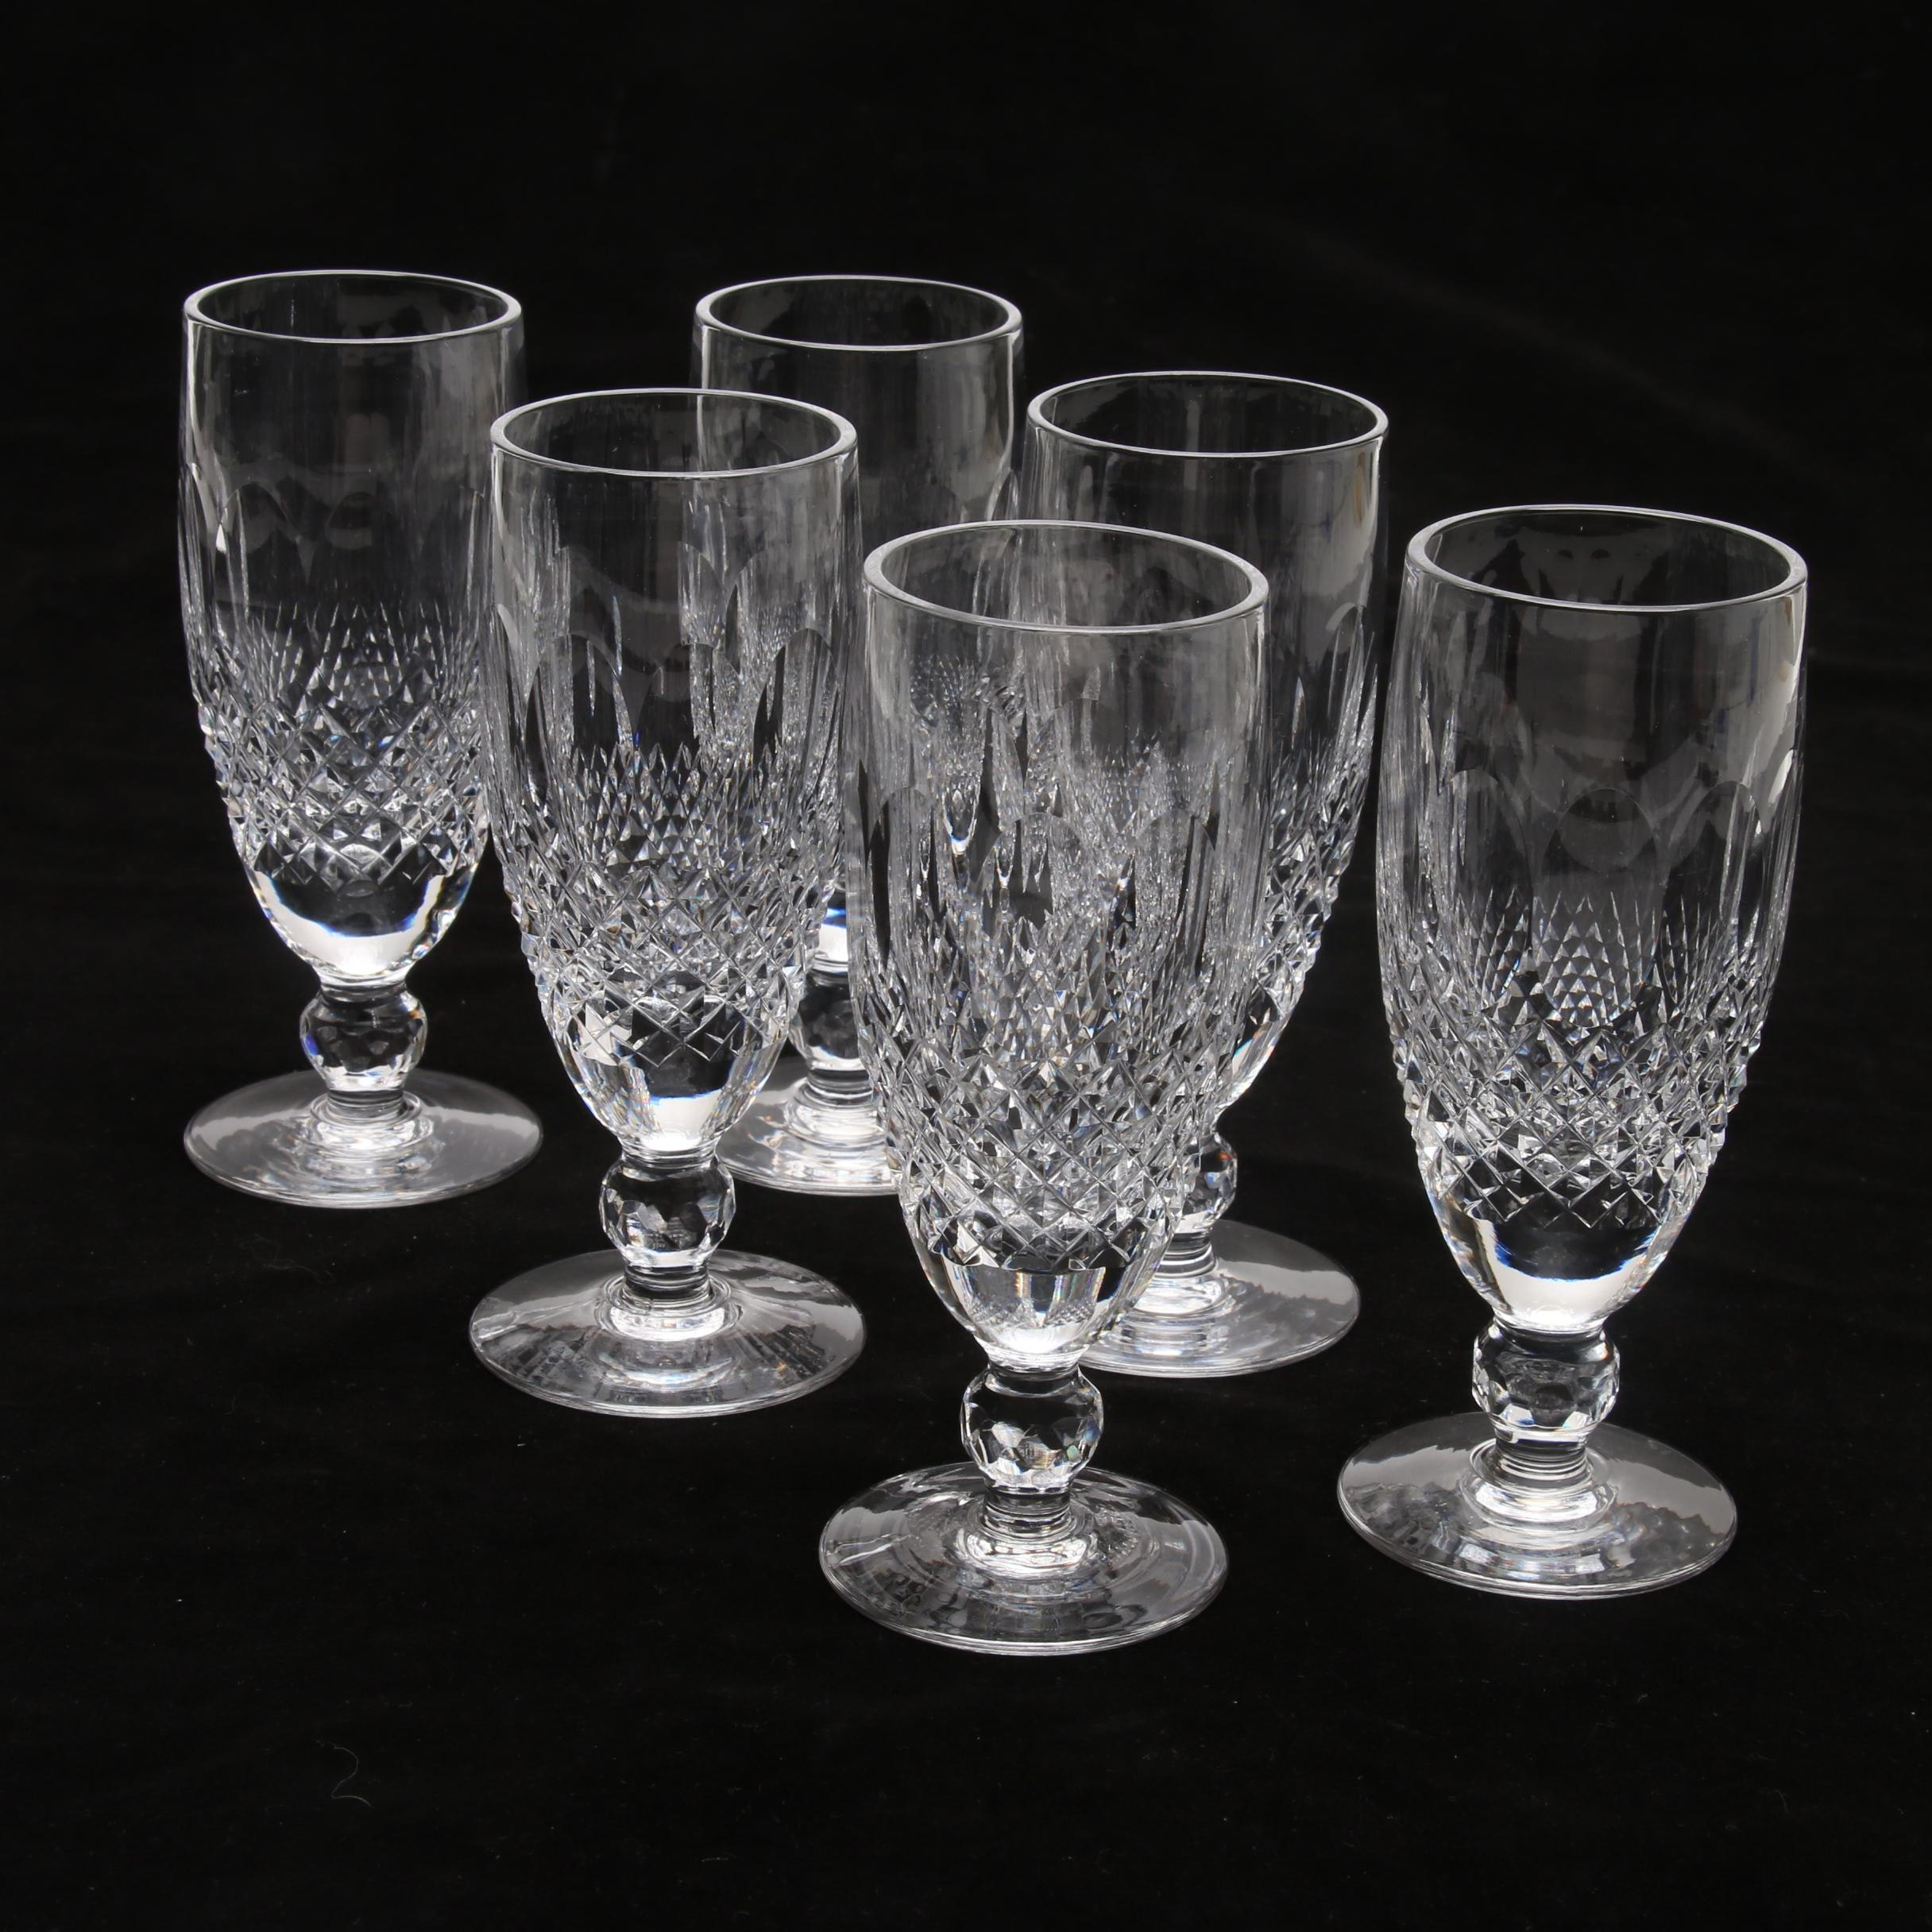 Waterford Crystal Colleen Short Stem Fluted Champagne Glasses Ebth